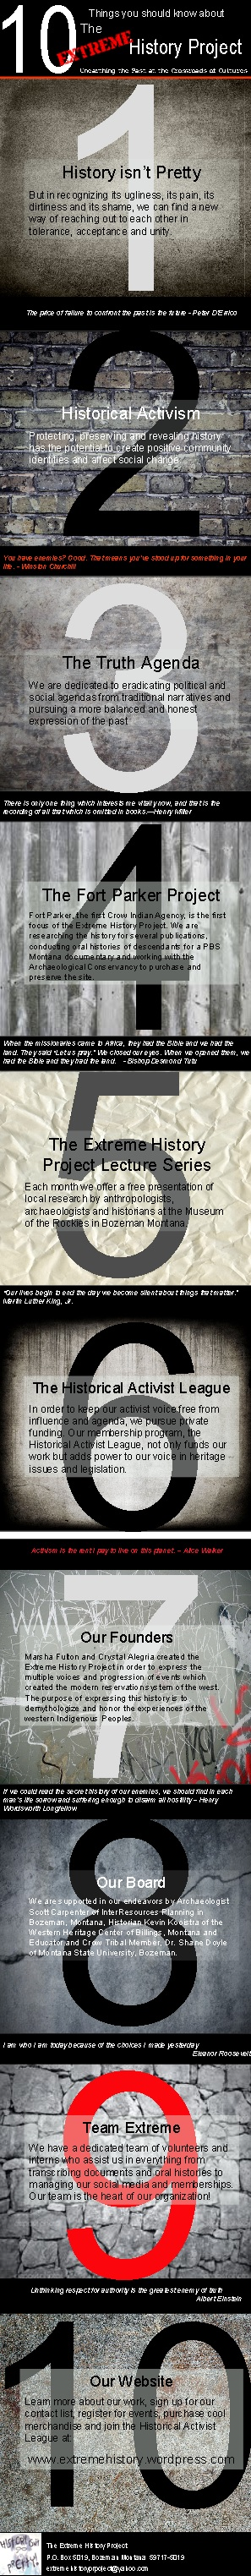 10 things you should know about The Extreme History Project